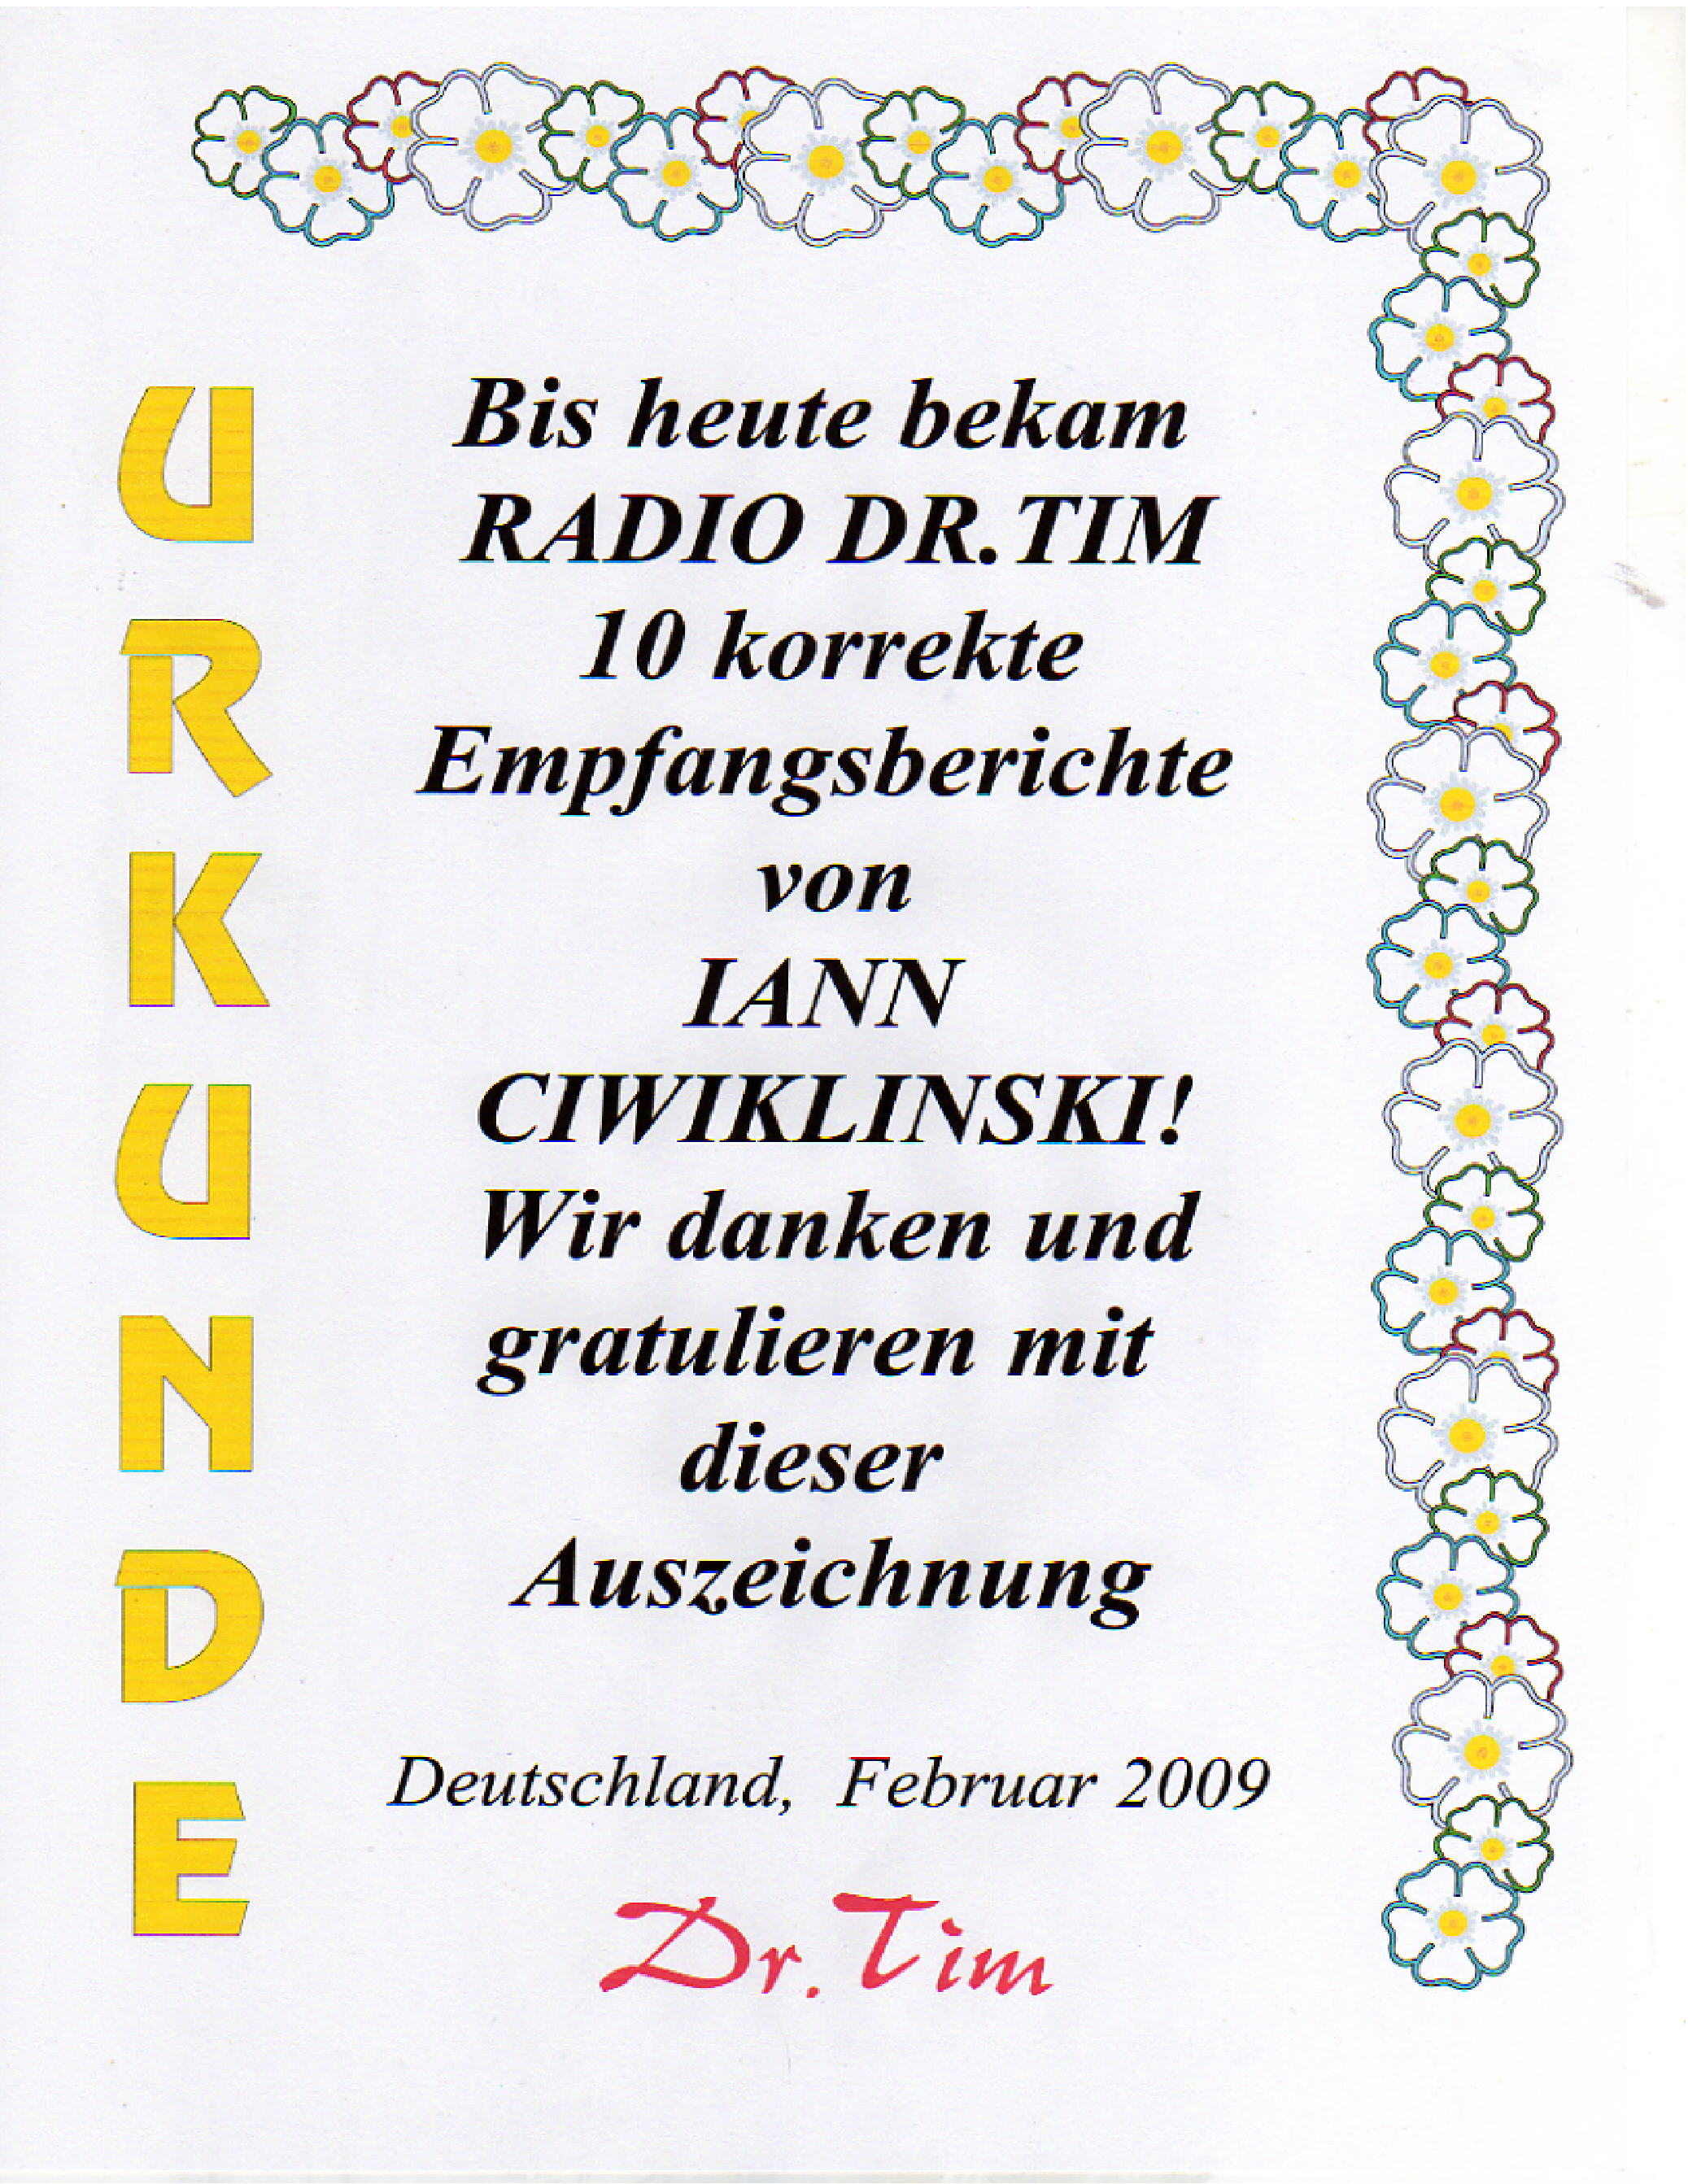 Pirate Radio QSL card - Radio Dr Tim